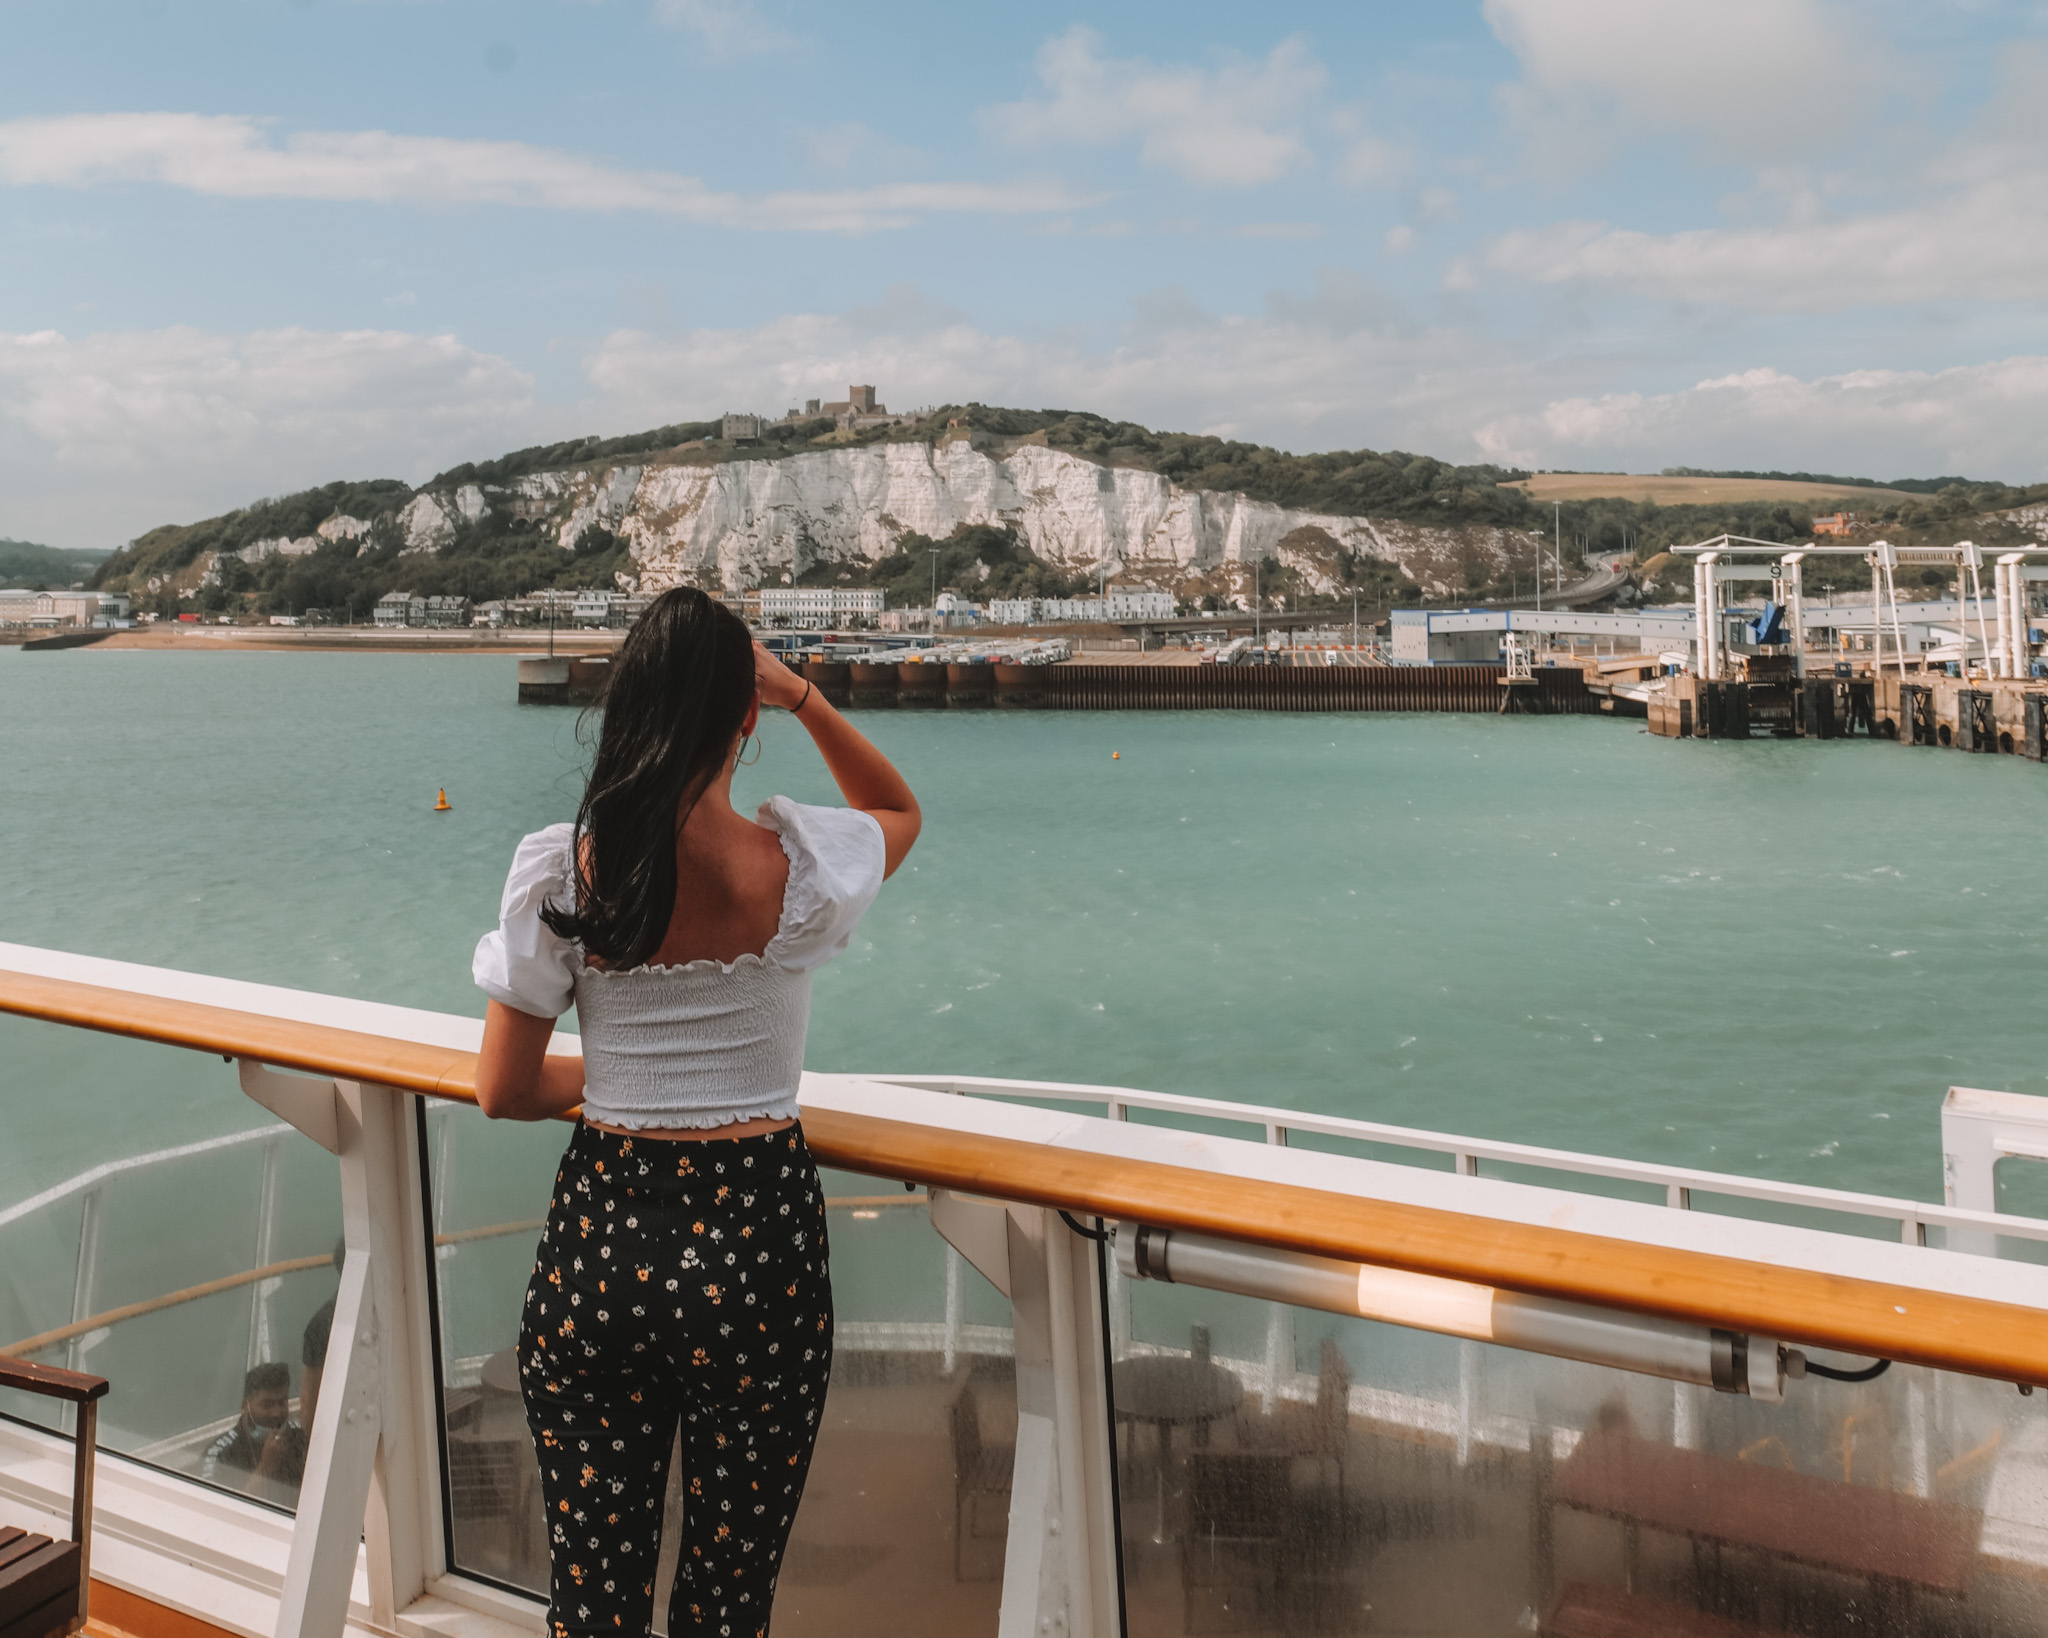 Exploring Europe with P&O Ferries-08-02 11:51:25 +0000JpegFile